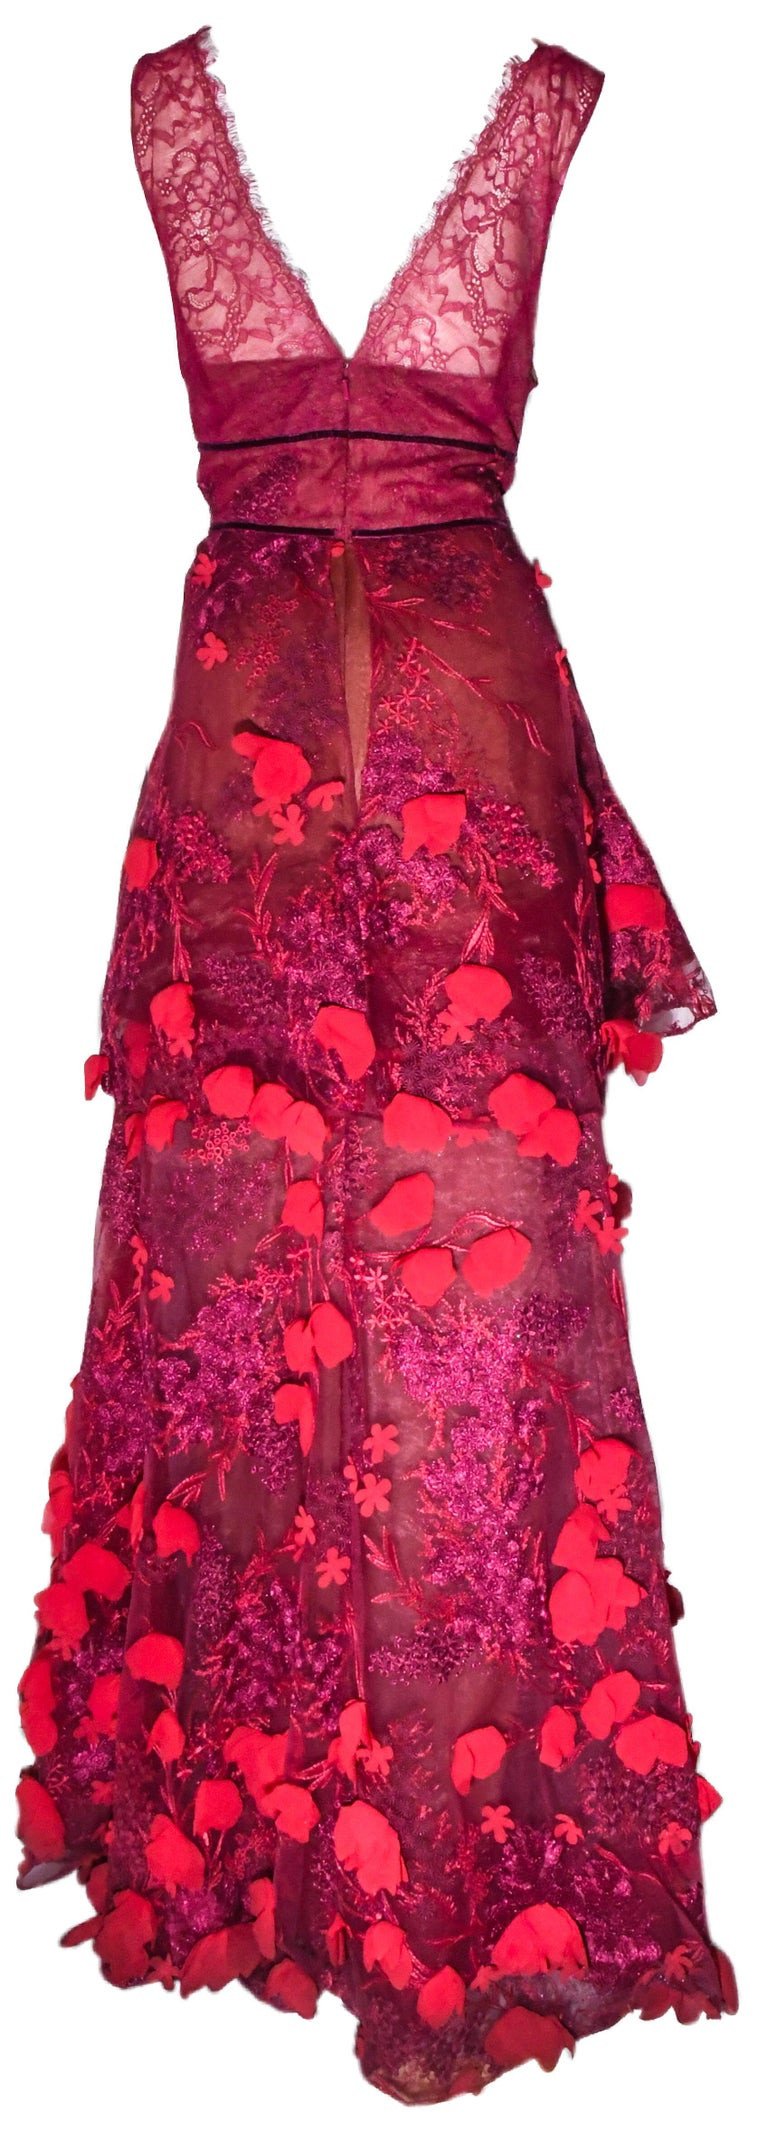 Marchesa Notte Pink Gown with Flower Appliques Throughout In Excellent Condition For Sale In Palm Beach, FL